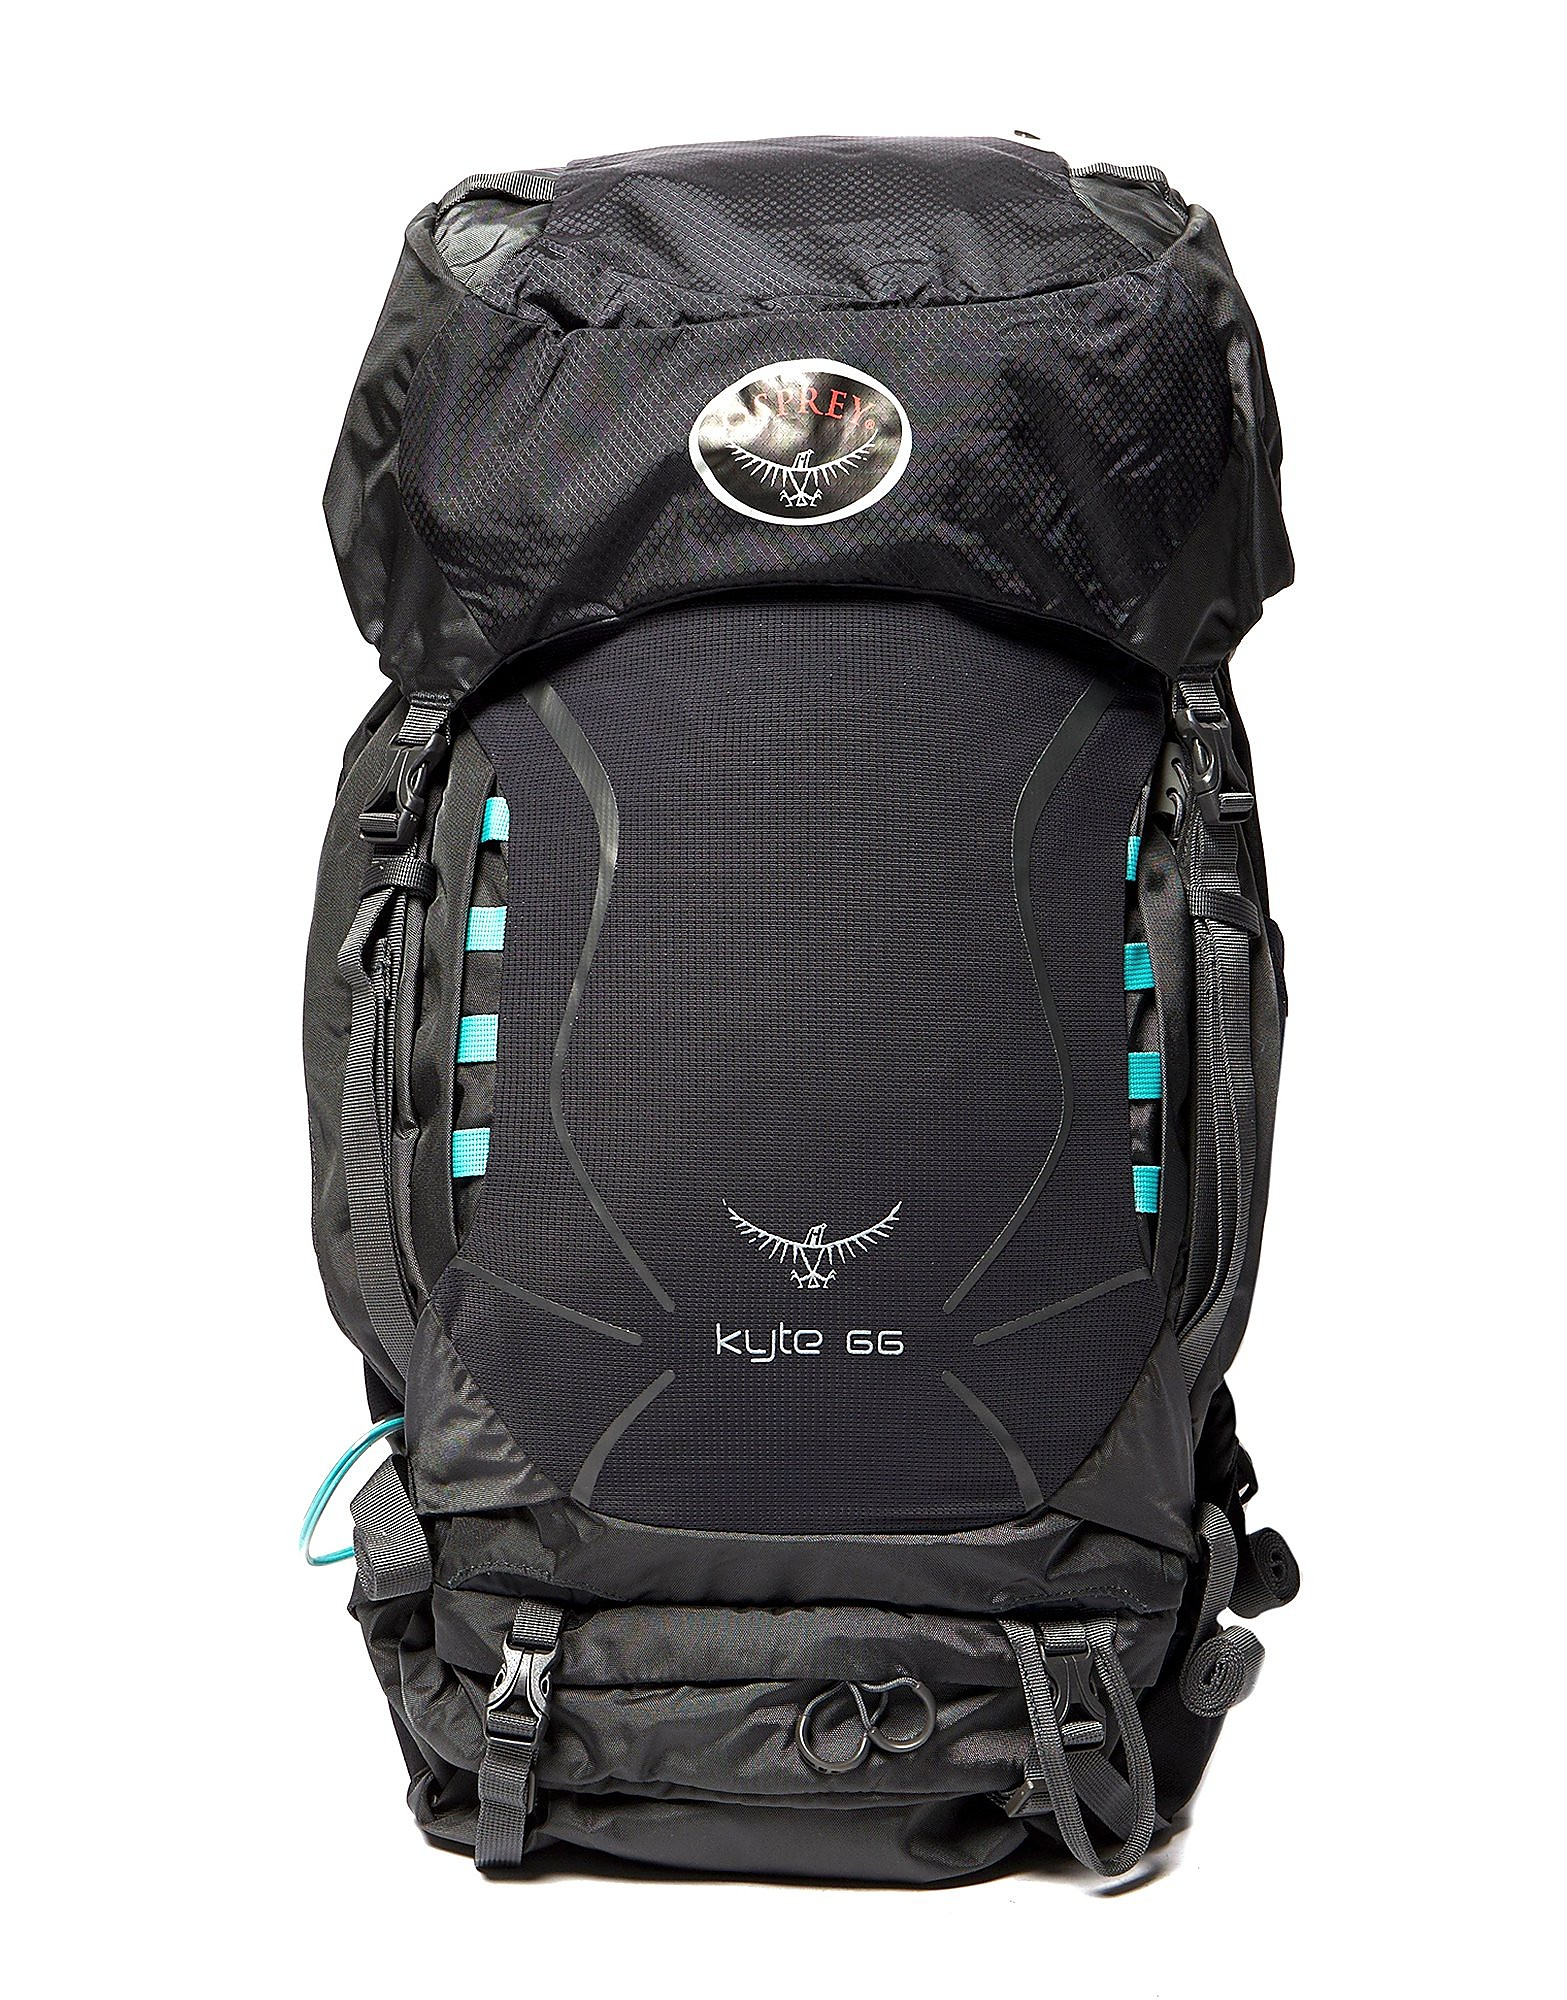 Osprey Osprey Kyte 66 Backpack